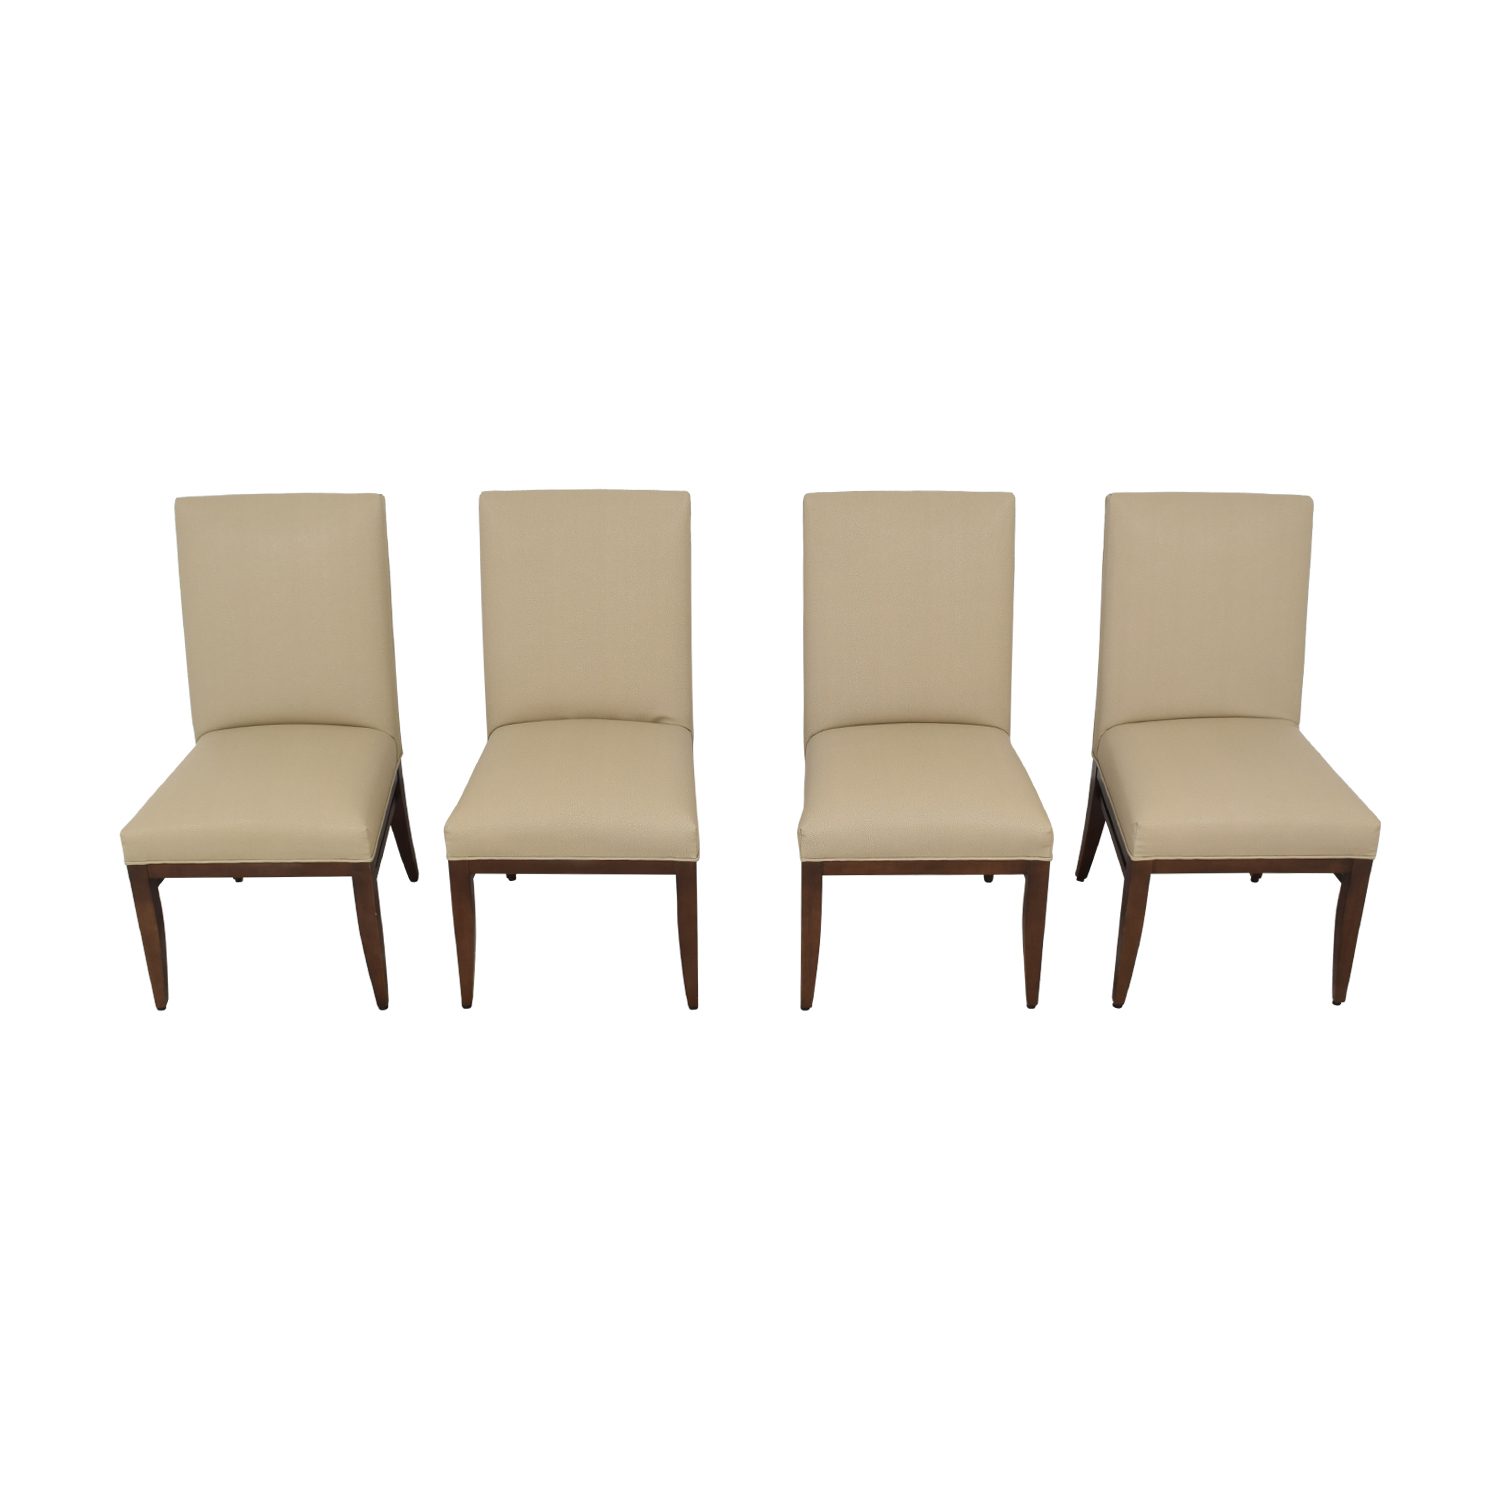 buy Duralee Kent Upholstered Dining Chairs Duralee Chairs